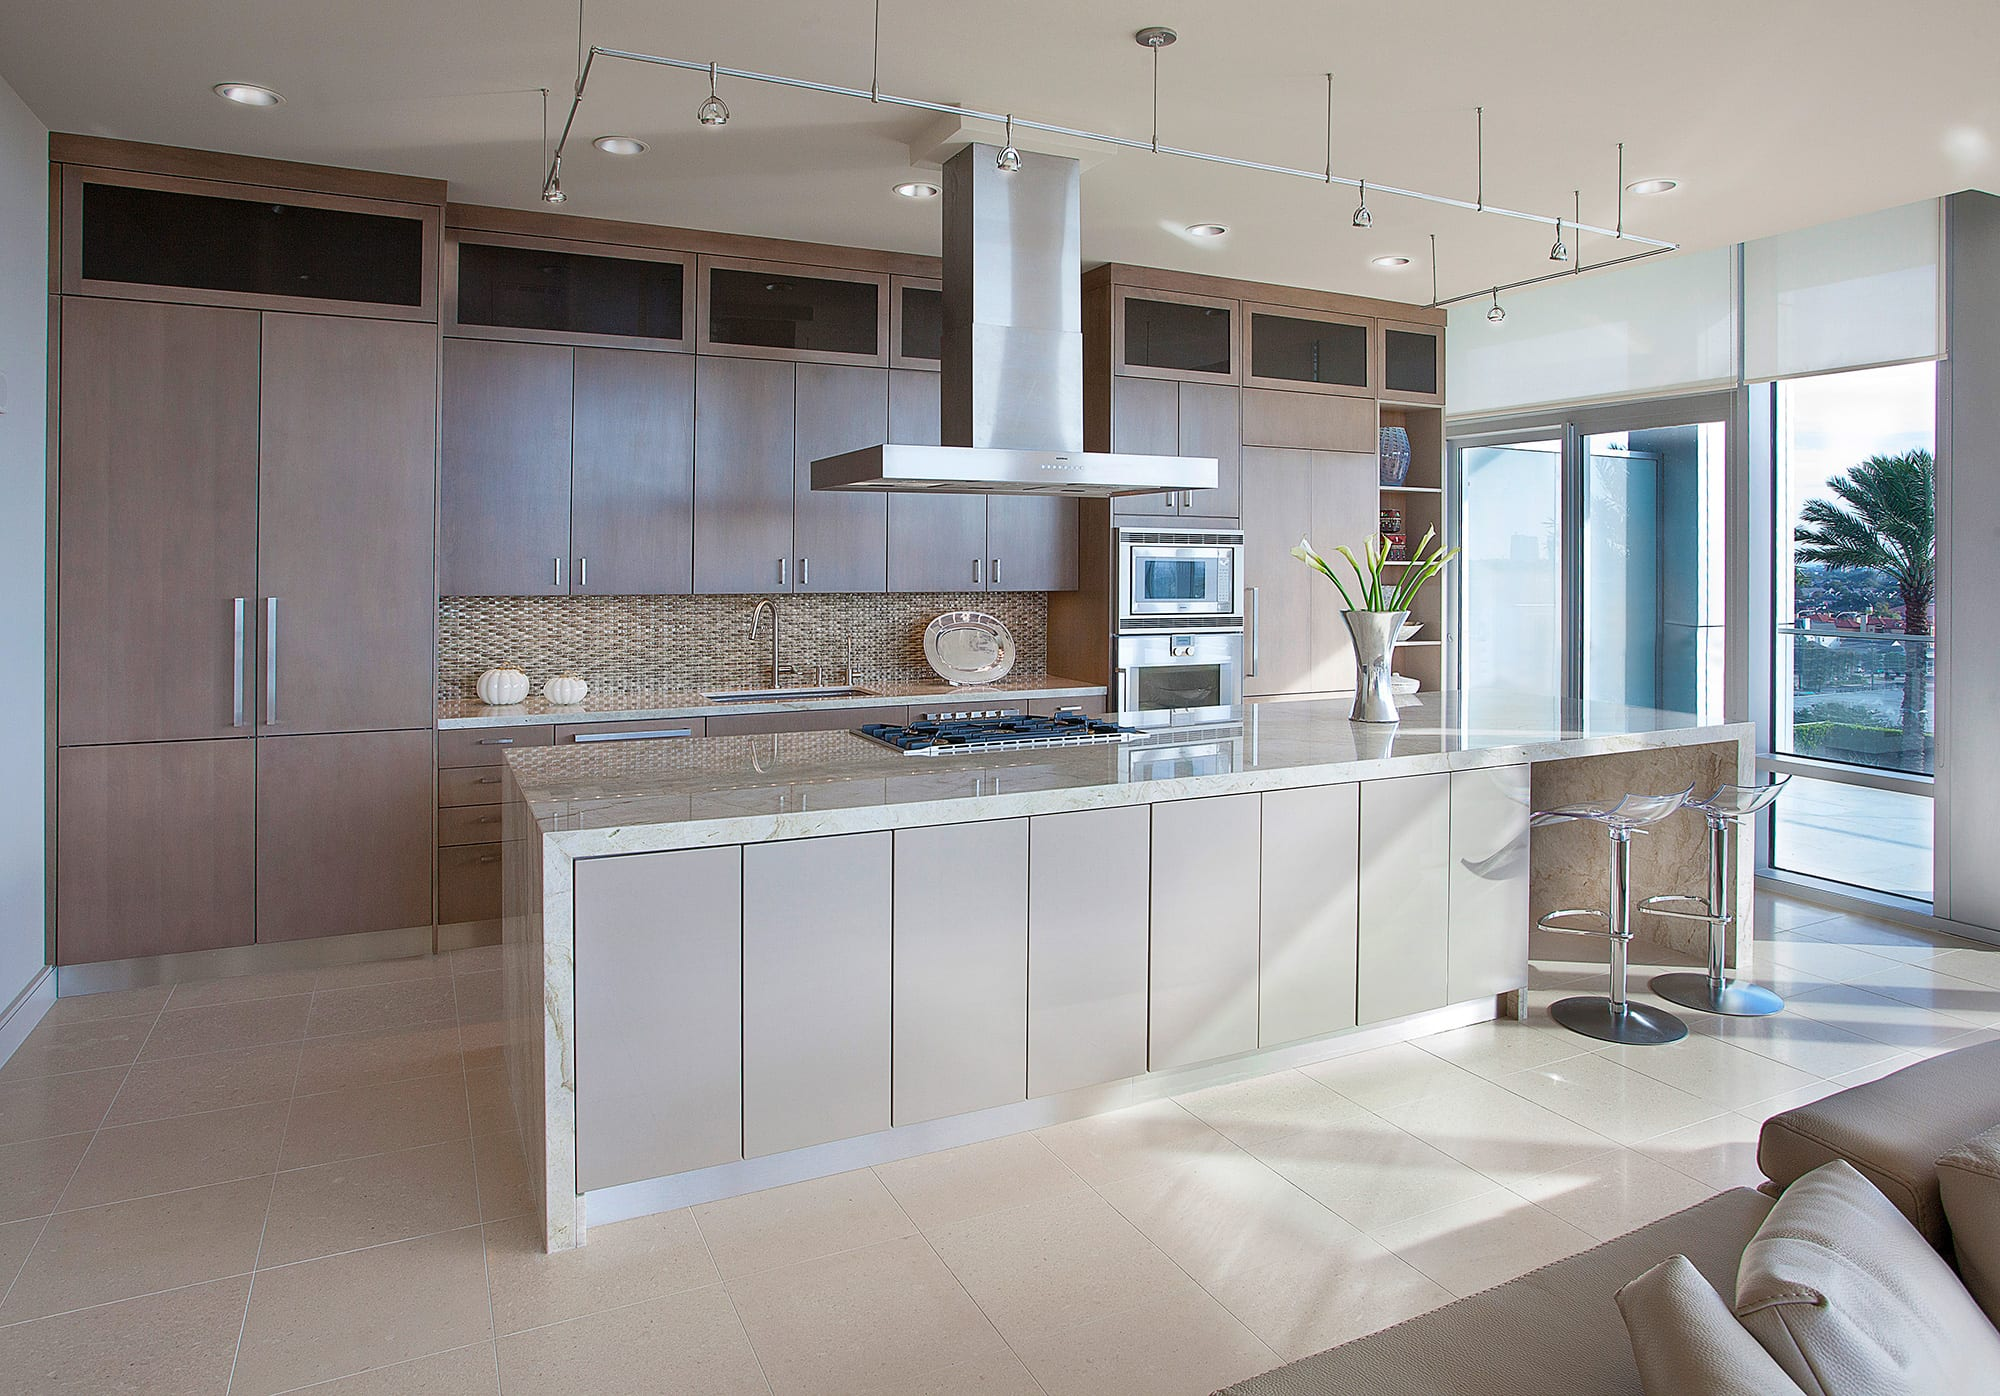 kitchen cabinet innovations - Kcheninnovationen 2015